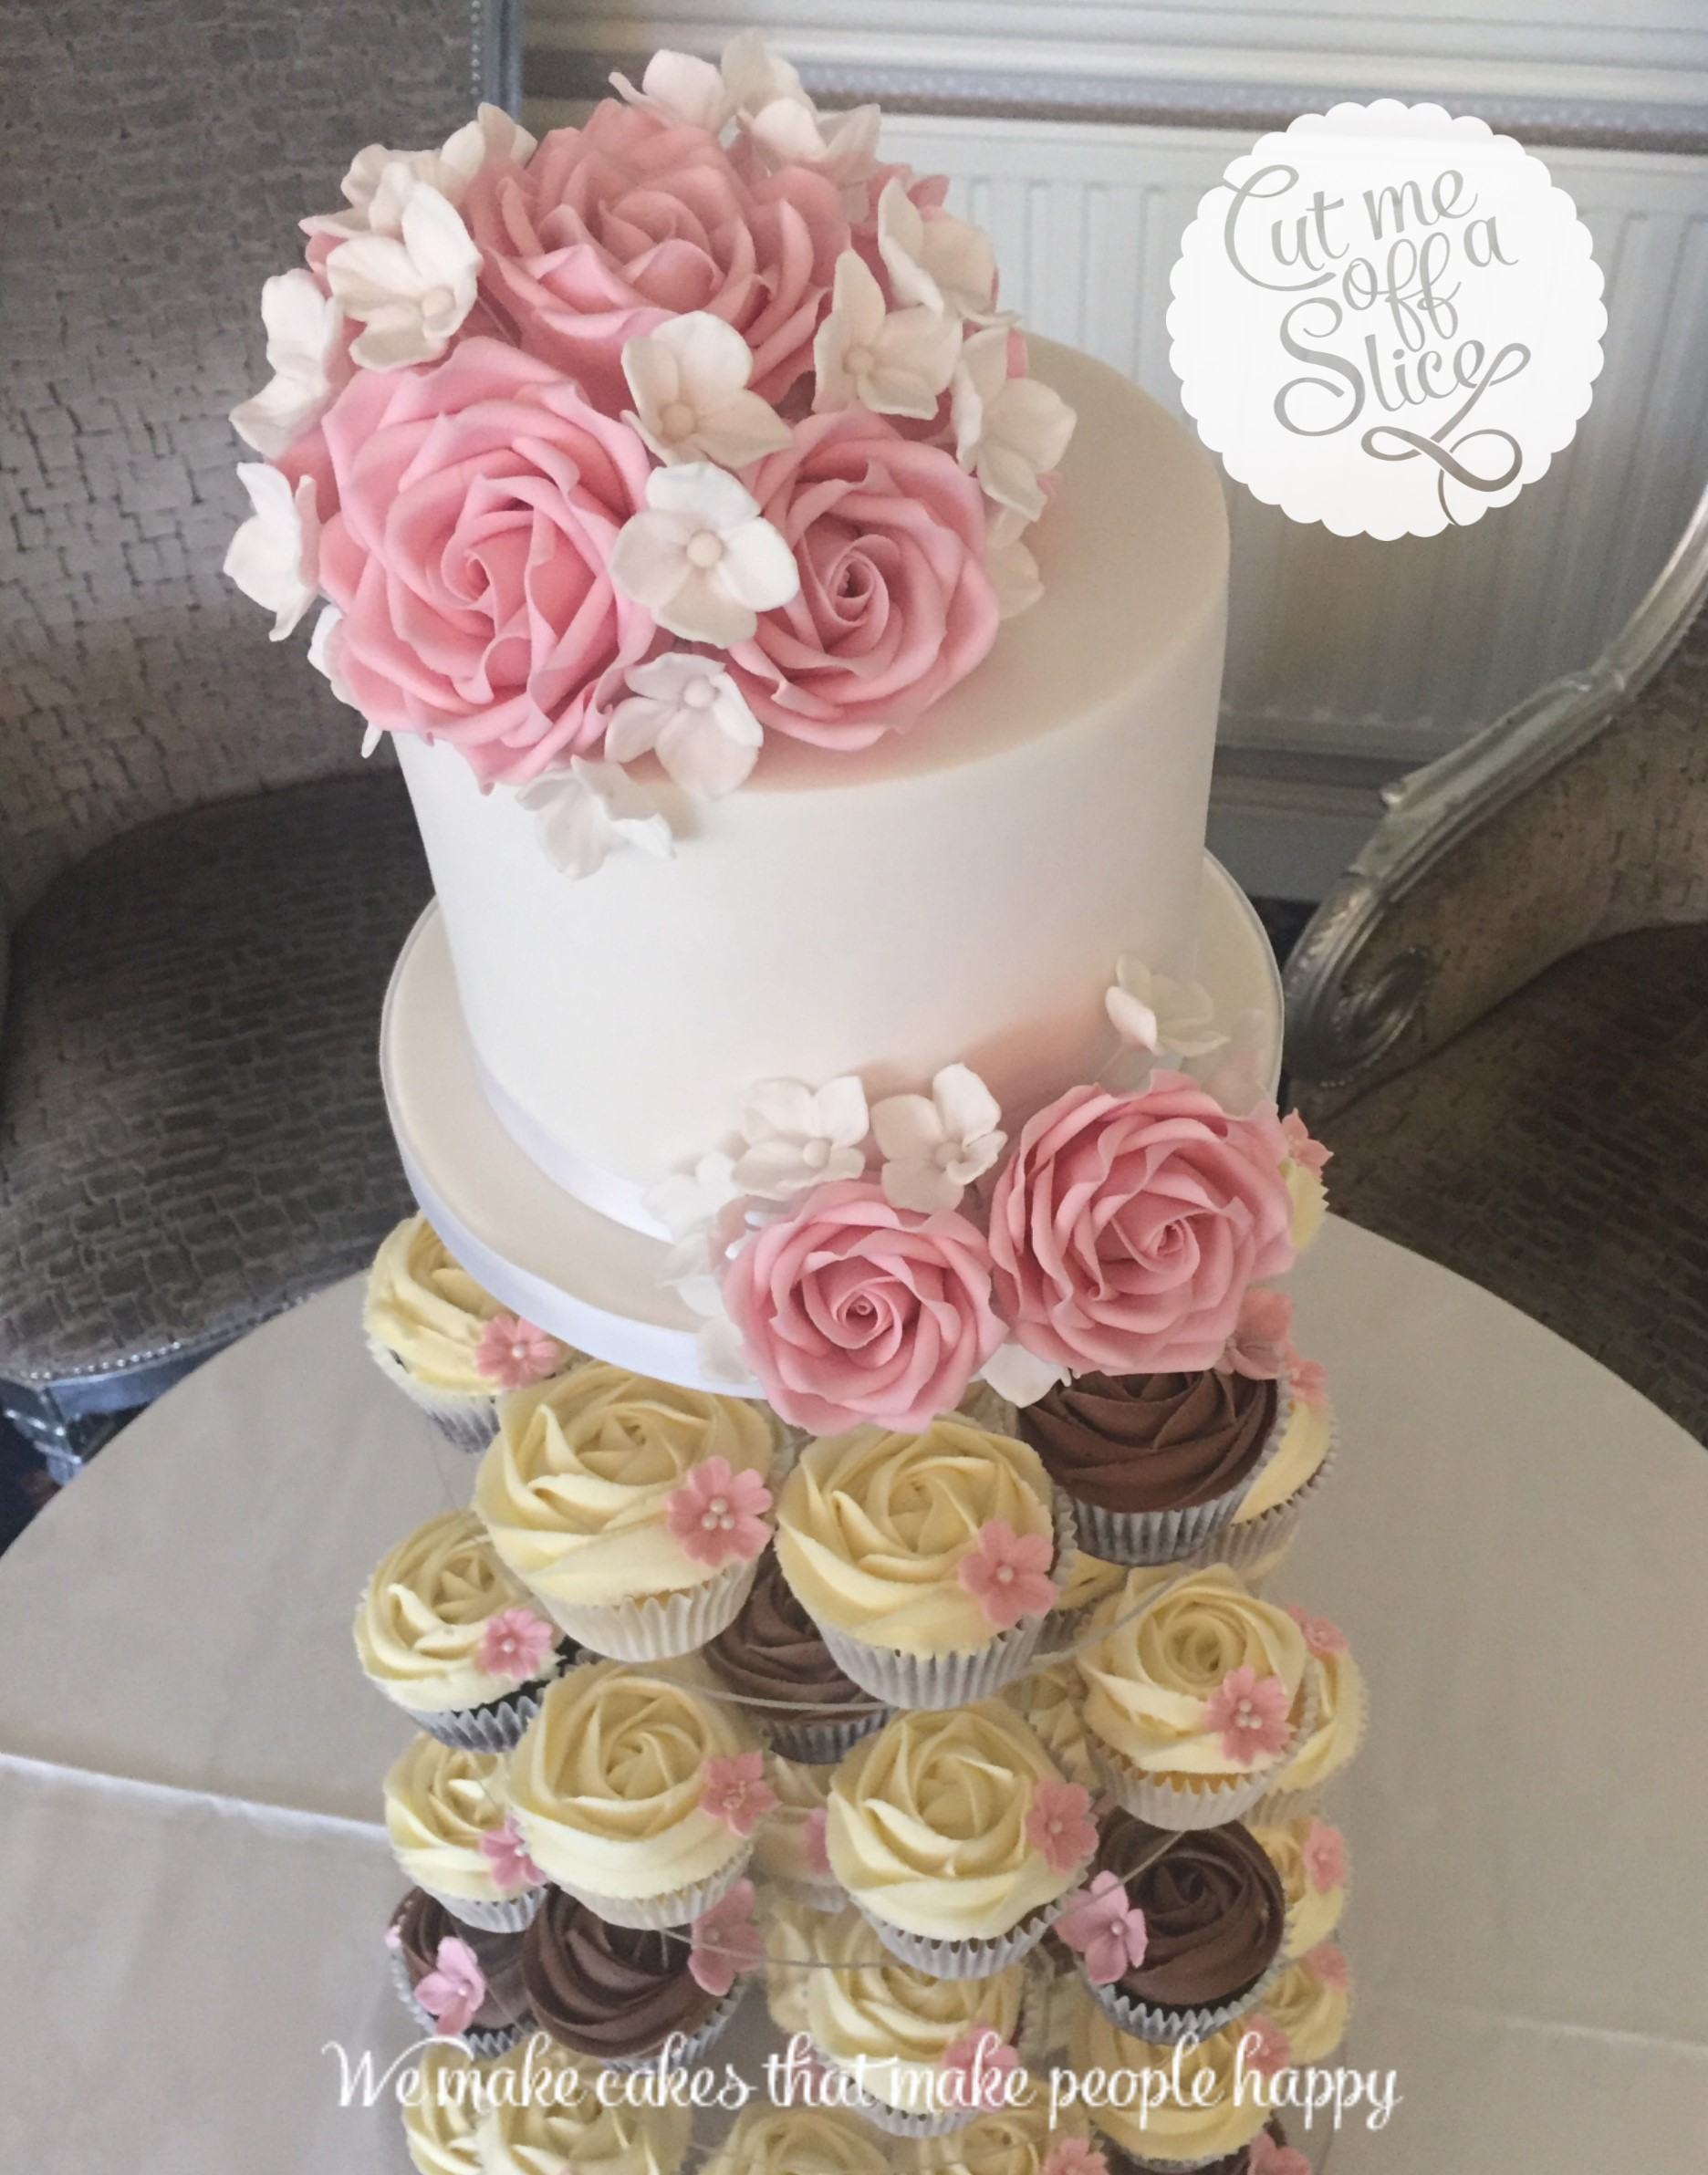 cut wedding cake cup cakes wedding cakes cut me a slice the cake 13305